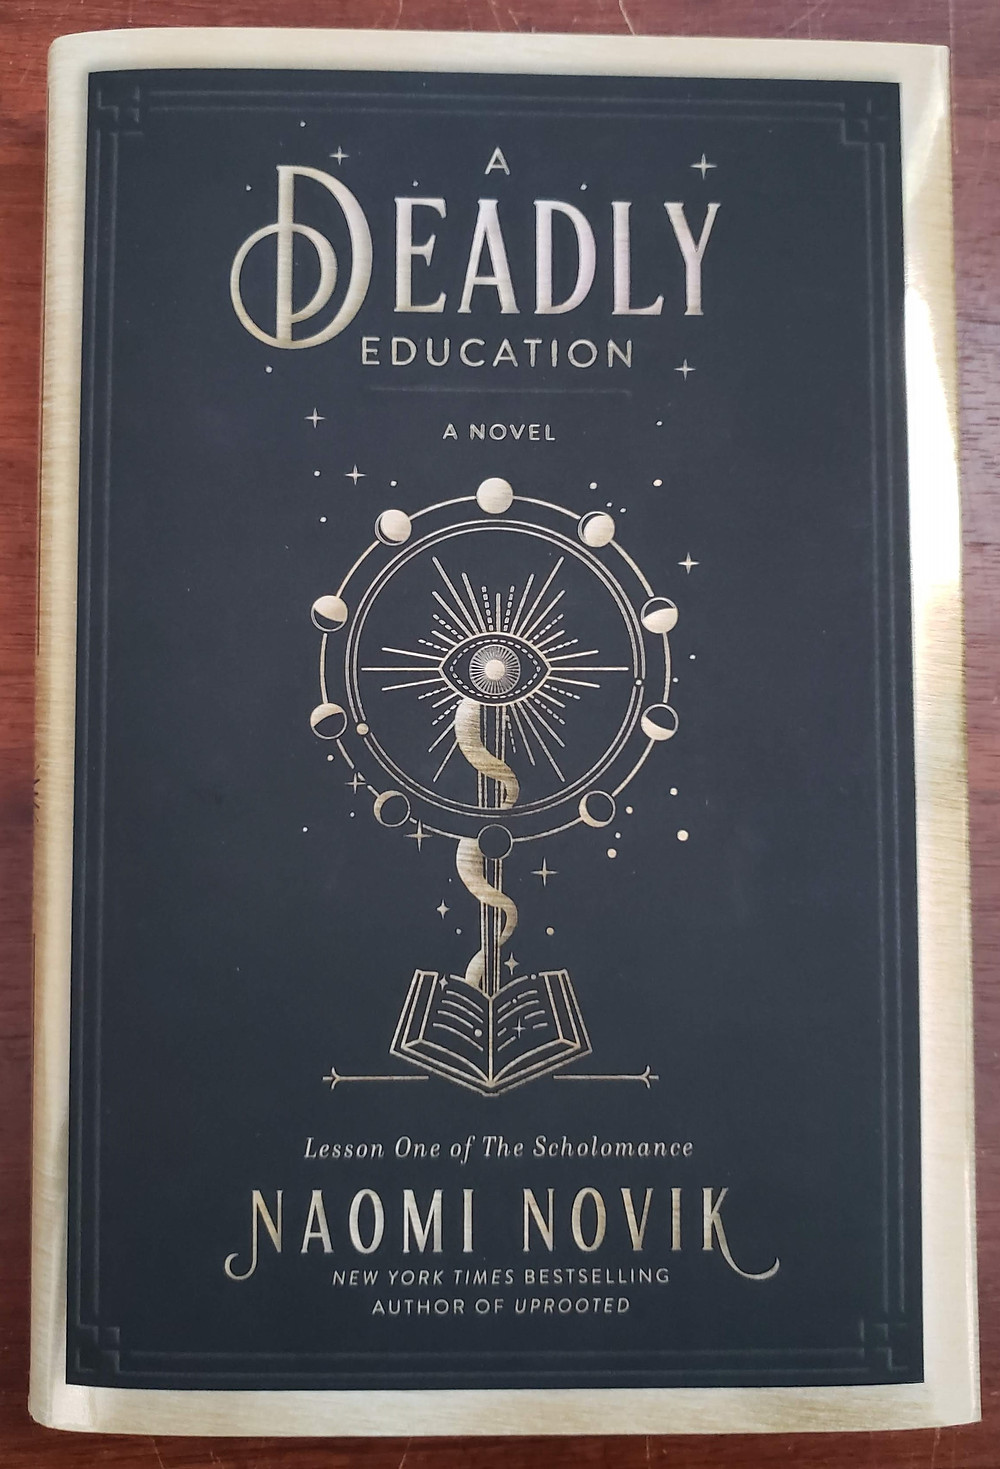 Front image of the book cover of A Deadly Education by Naomi Novik.